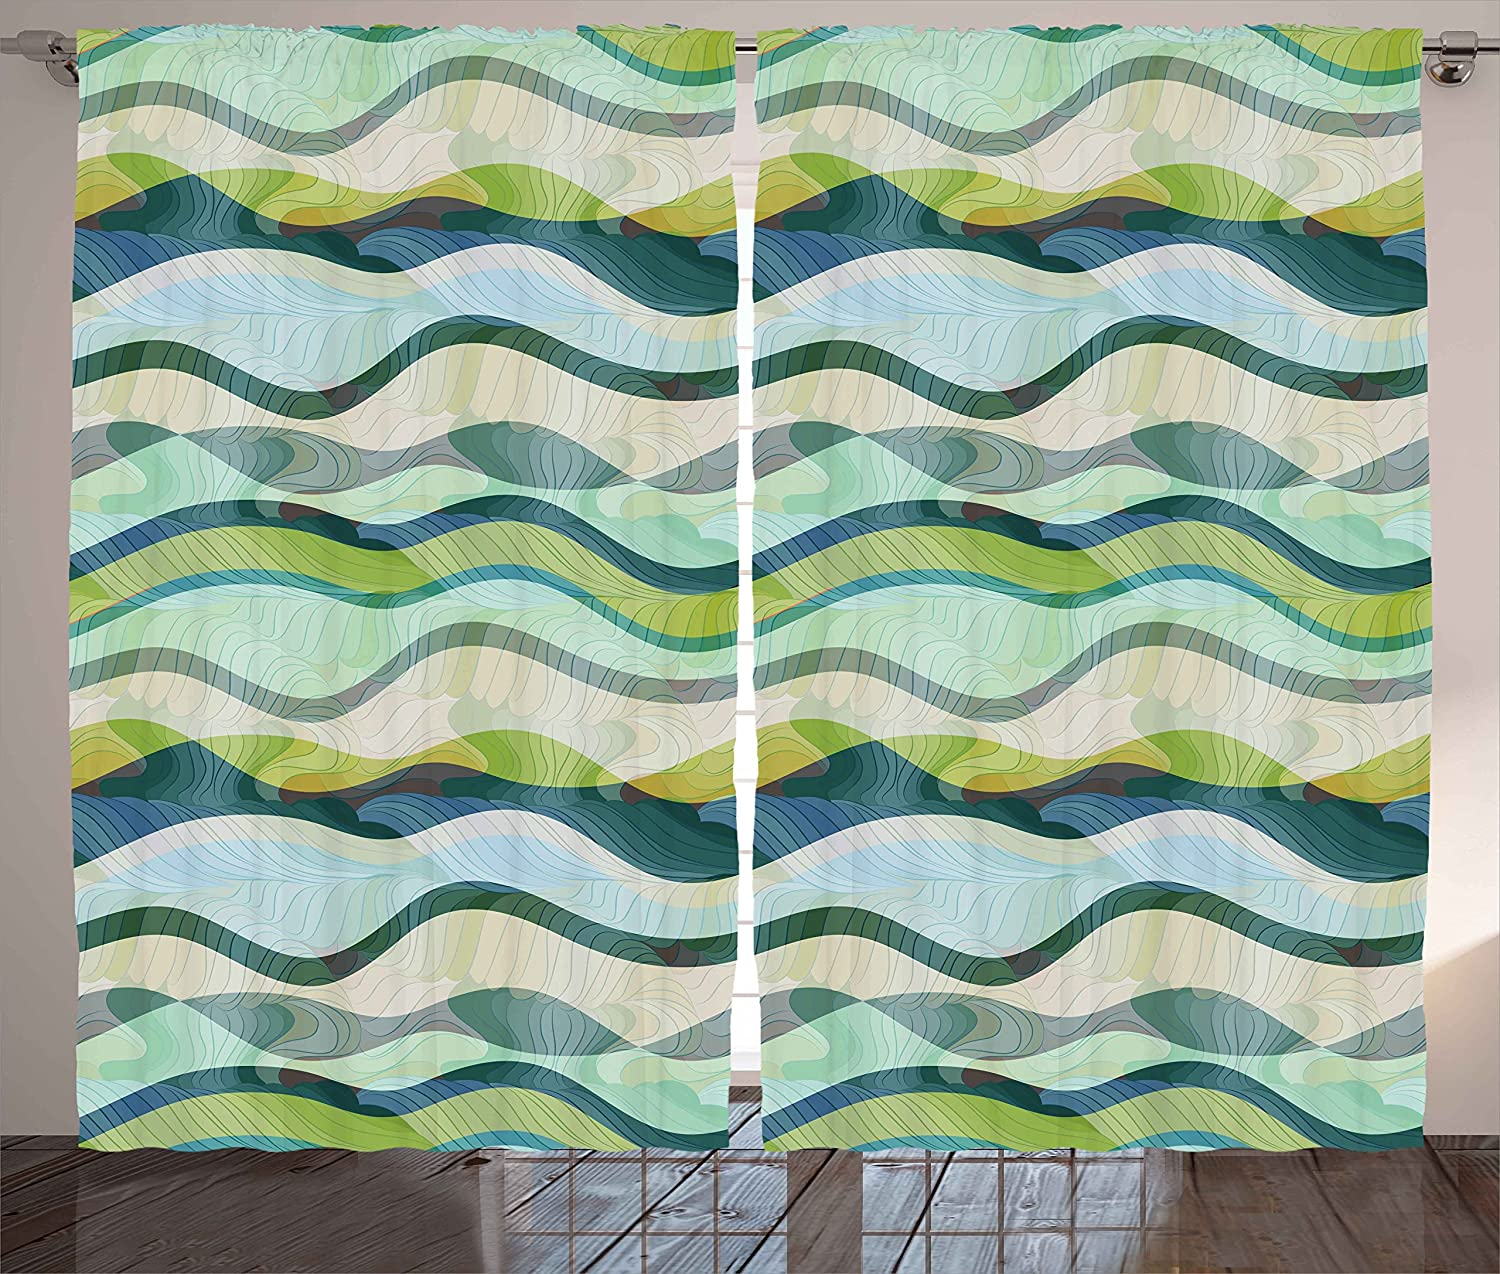 Ambesonne Ocean Curtains, Wavy Shapes Abstract Design Ombre Like Sea Themed Colored Image, Living Room Bedroom Window Drapes 2 Panel Set, 108W X 84L inches, Sea Foam Pale Green and Olive Green